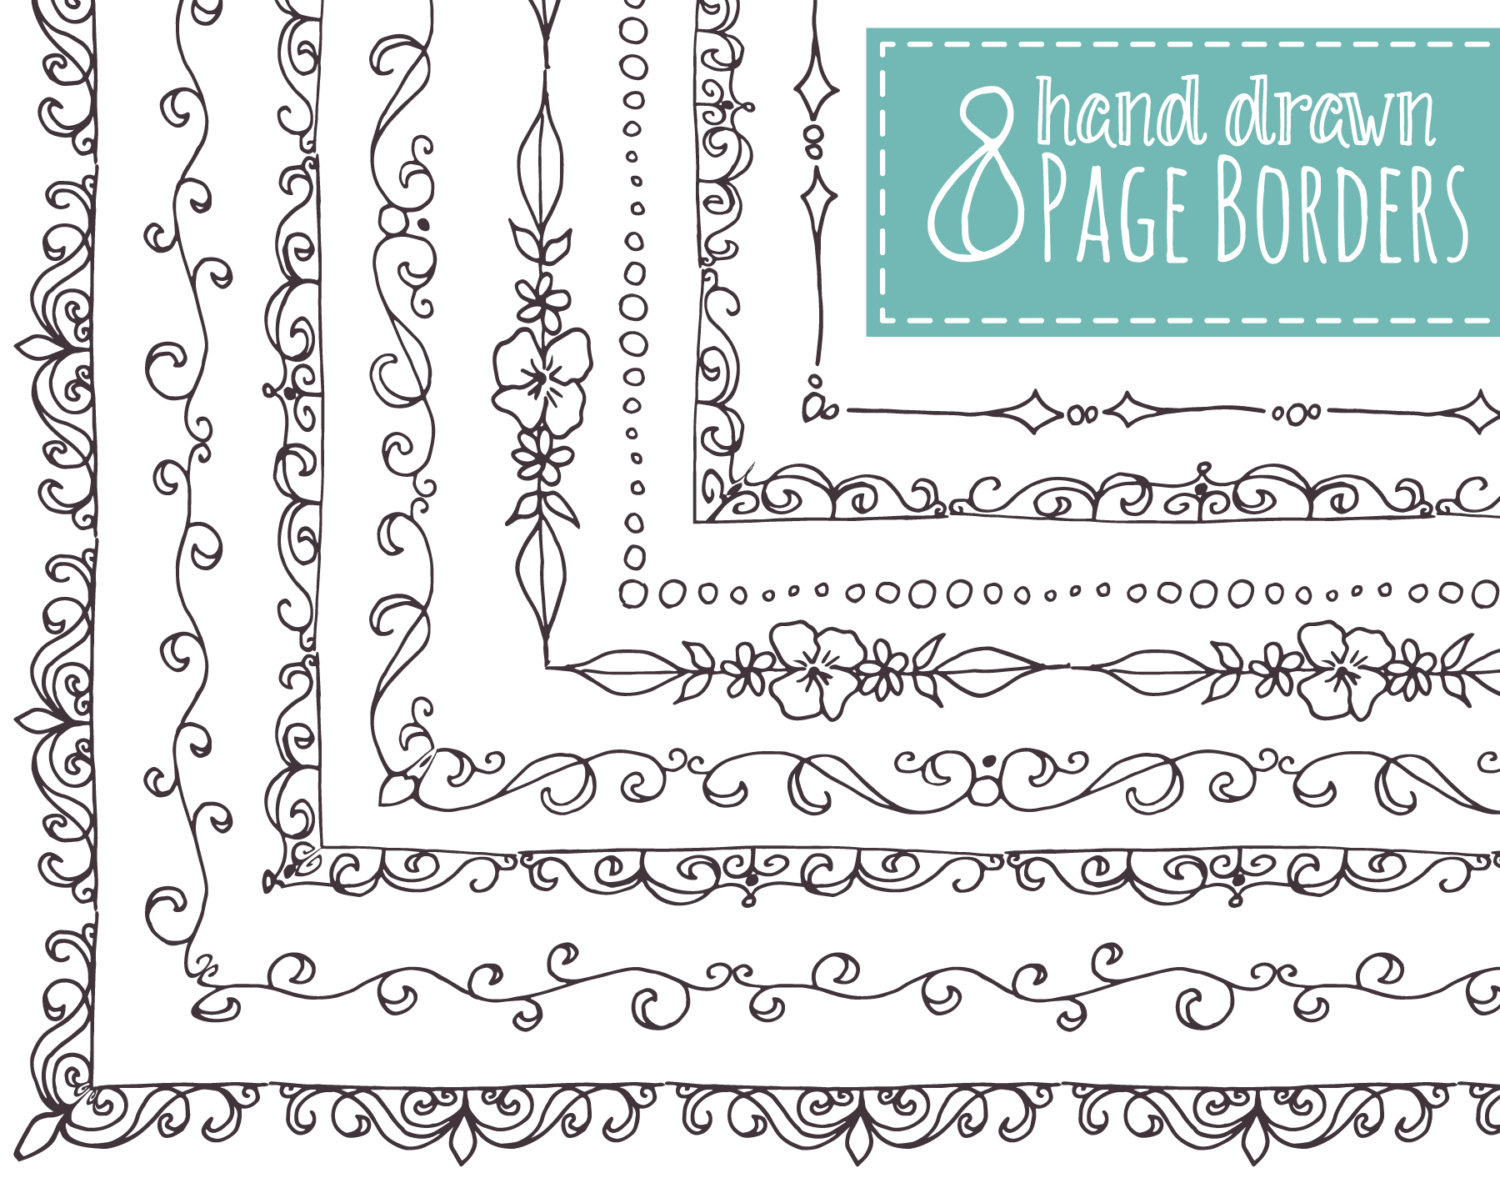 1500x1188 Border Design Drawing For Boys Clip Art 8 Page Borders Hand